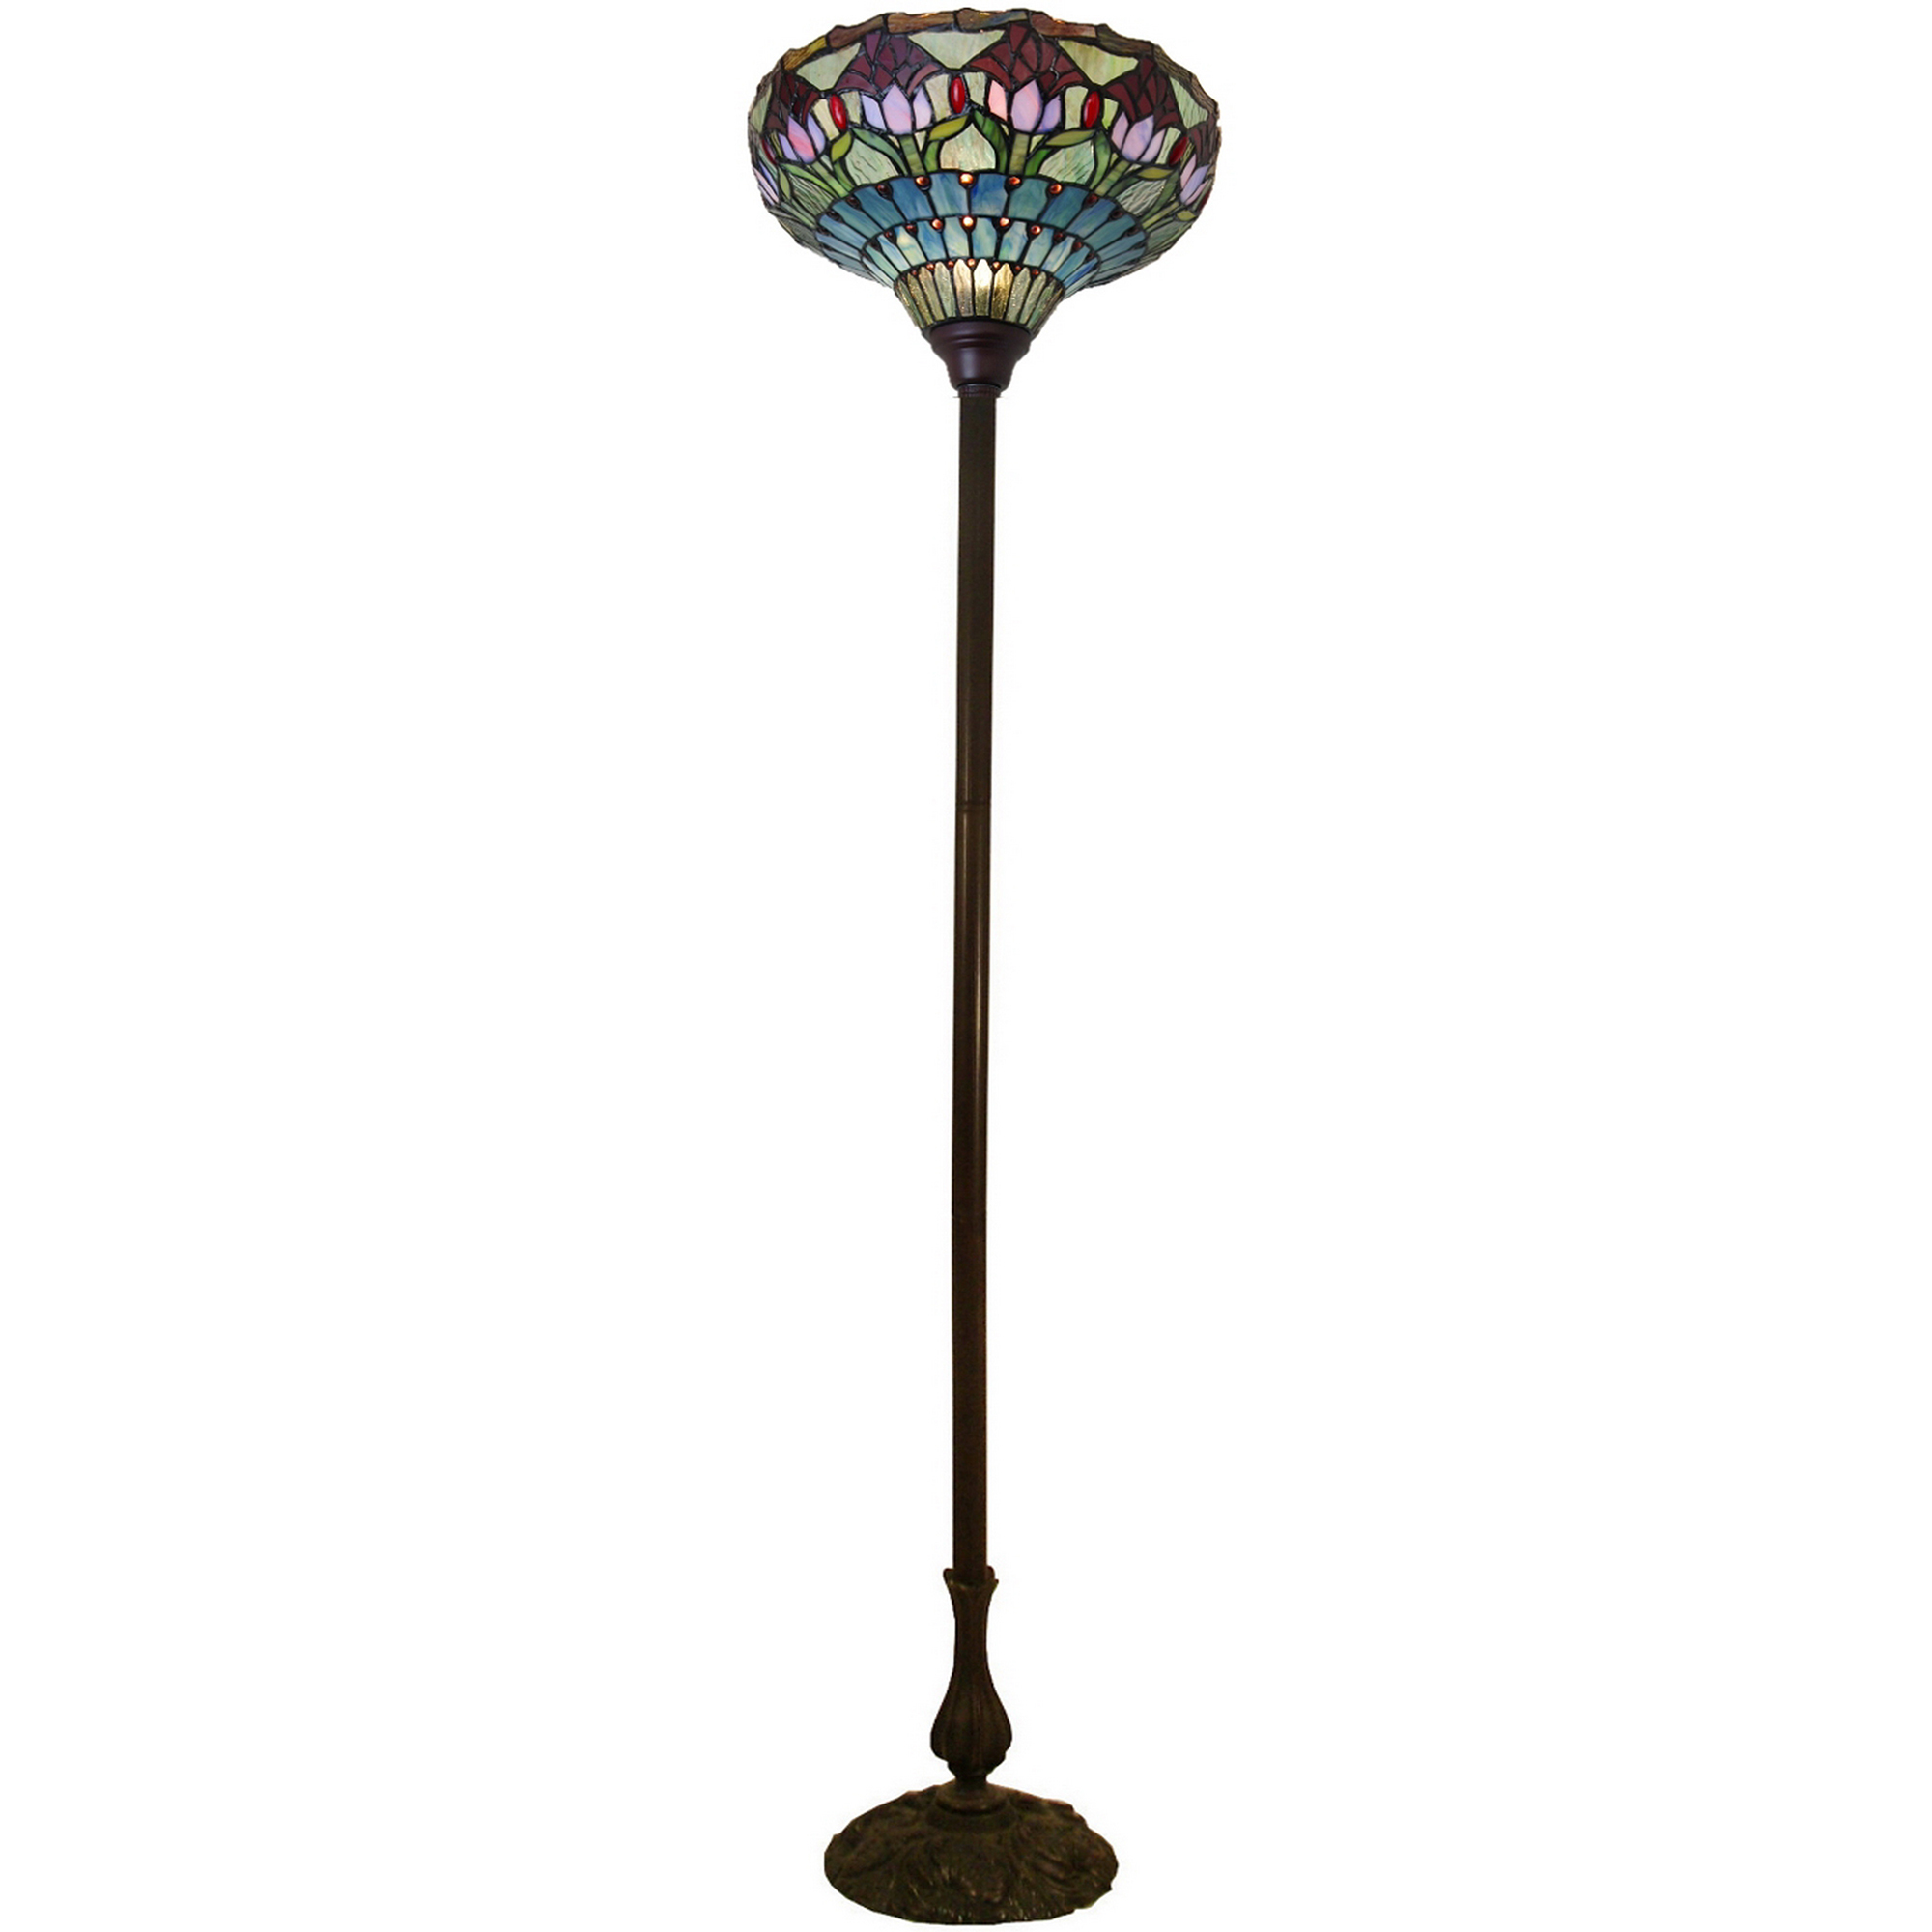 design classic dale tall table lights lowes victorian lamps torchiere parts your room sophisticated lovely tiffany lampshade floor lamp illuminates with and beautiful for interior style